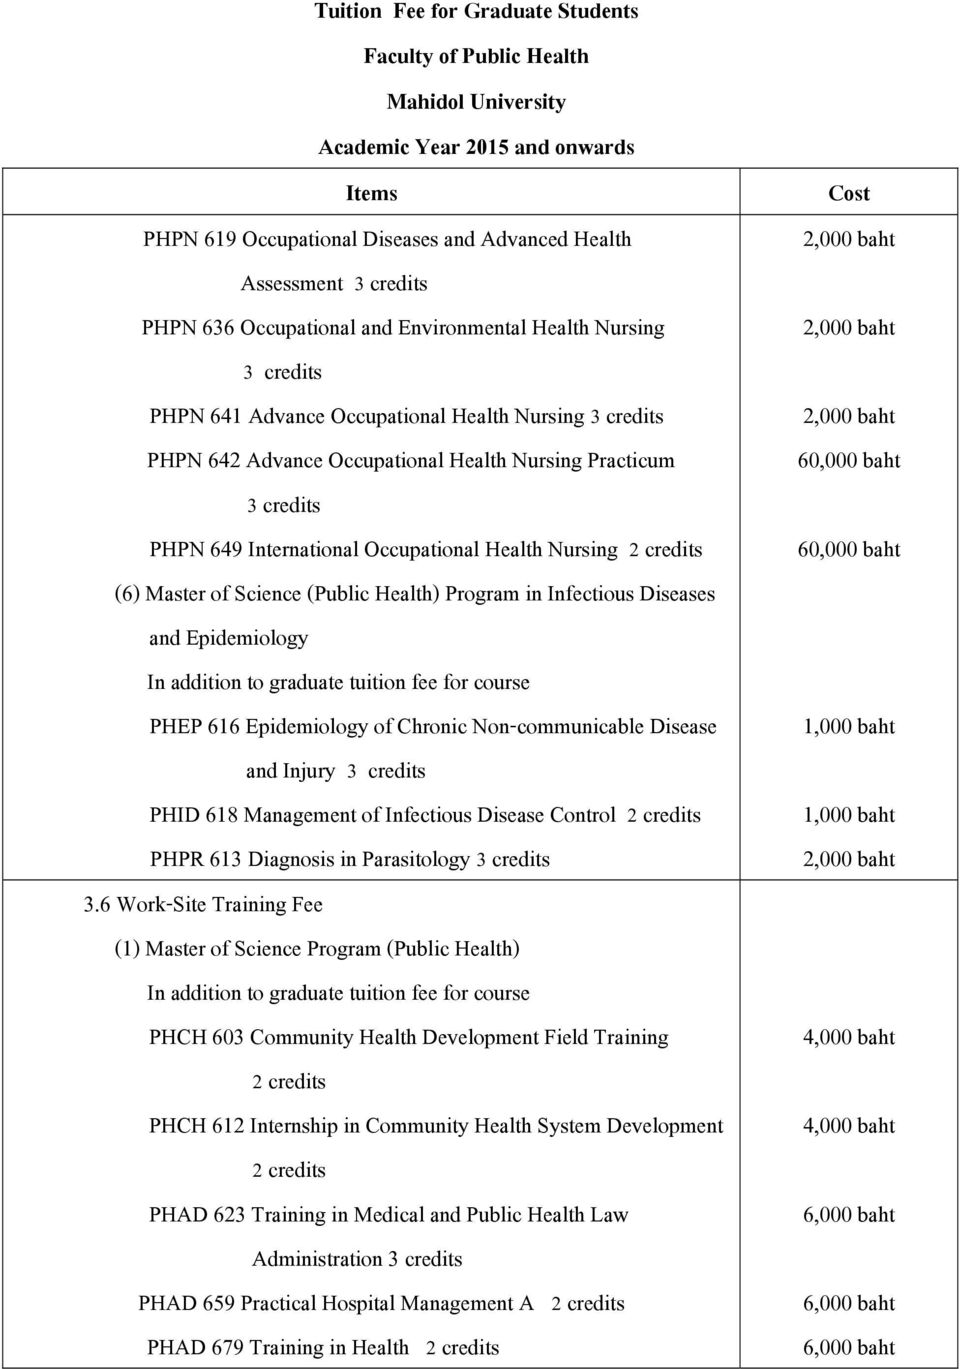 Non-communicable Disease and Injury PHID 618 Management of Infectious Disease Control 2 credits PHPR 613 Diagnosis in Parasitology 3.